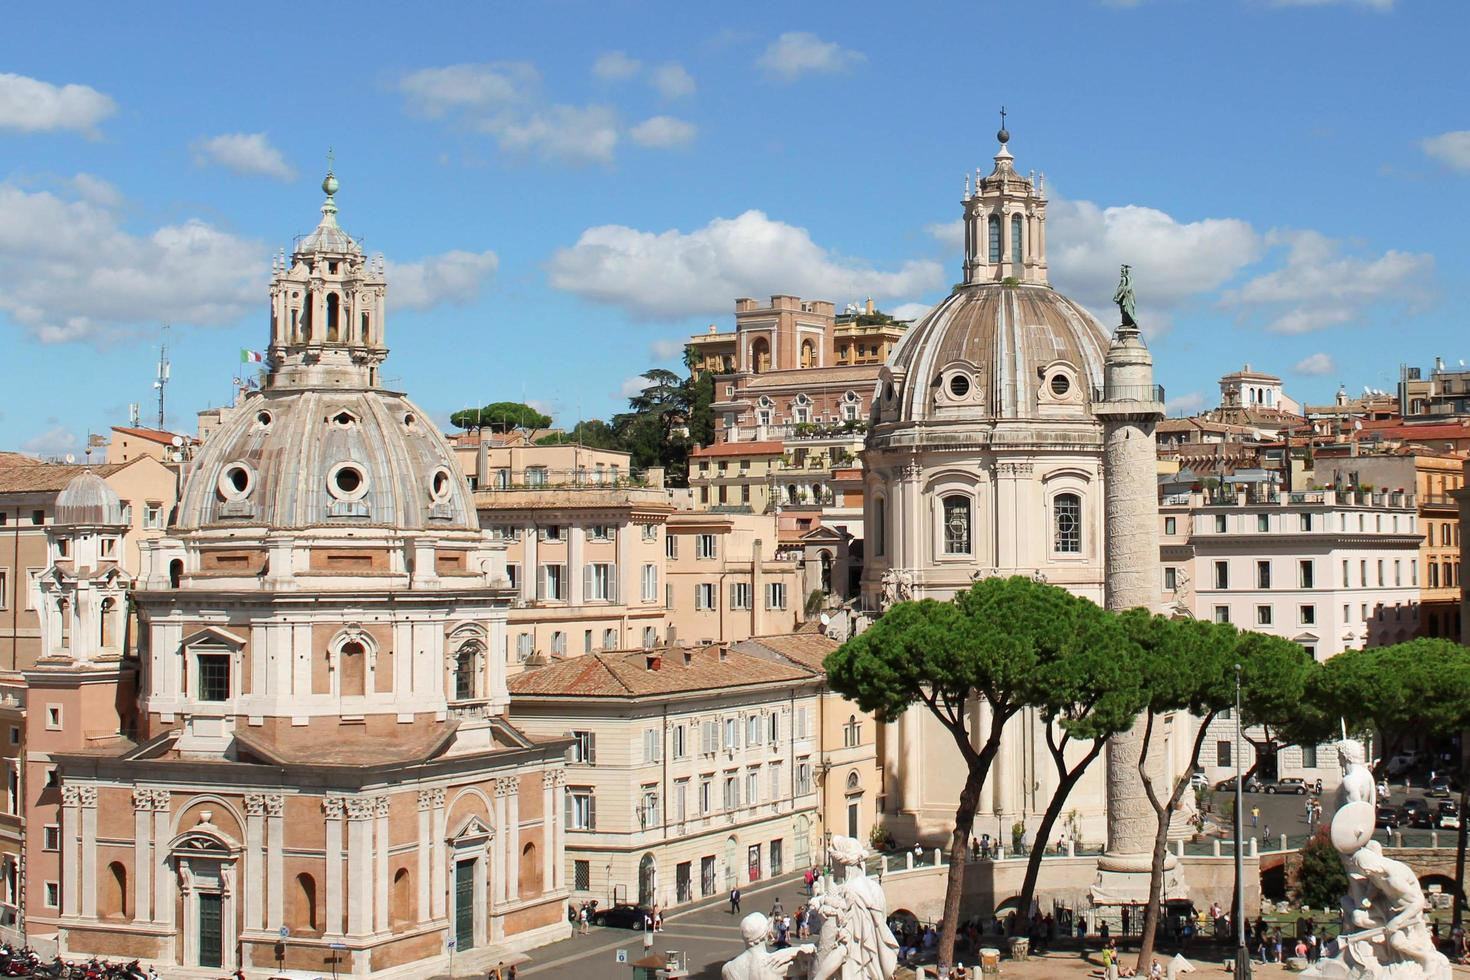 Buildings in Rome photo